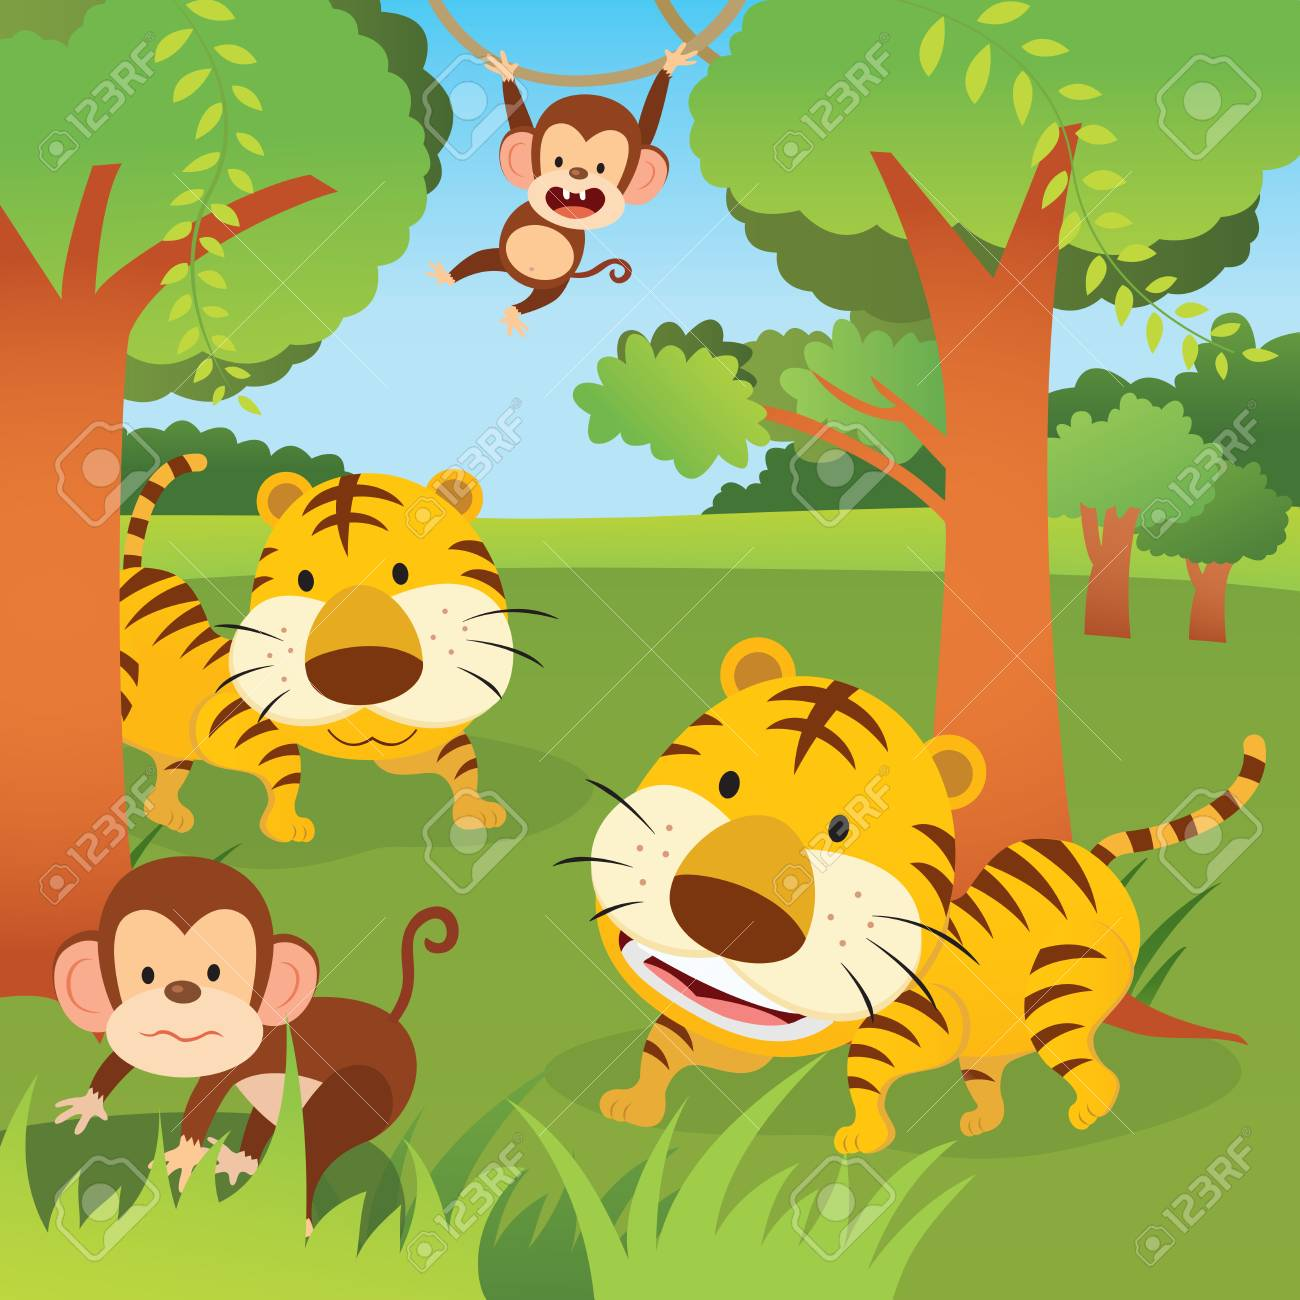 jungle animals vector illustration of two monkeys and tigers